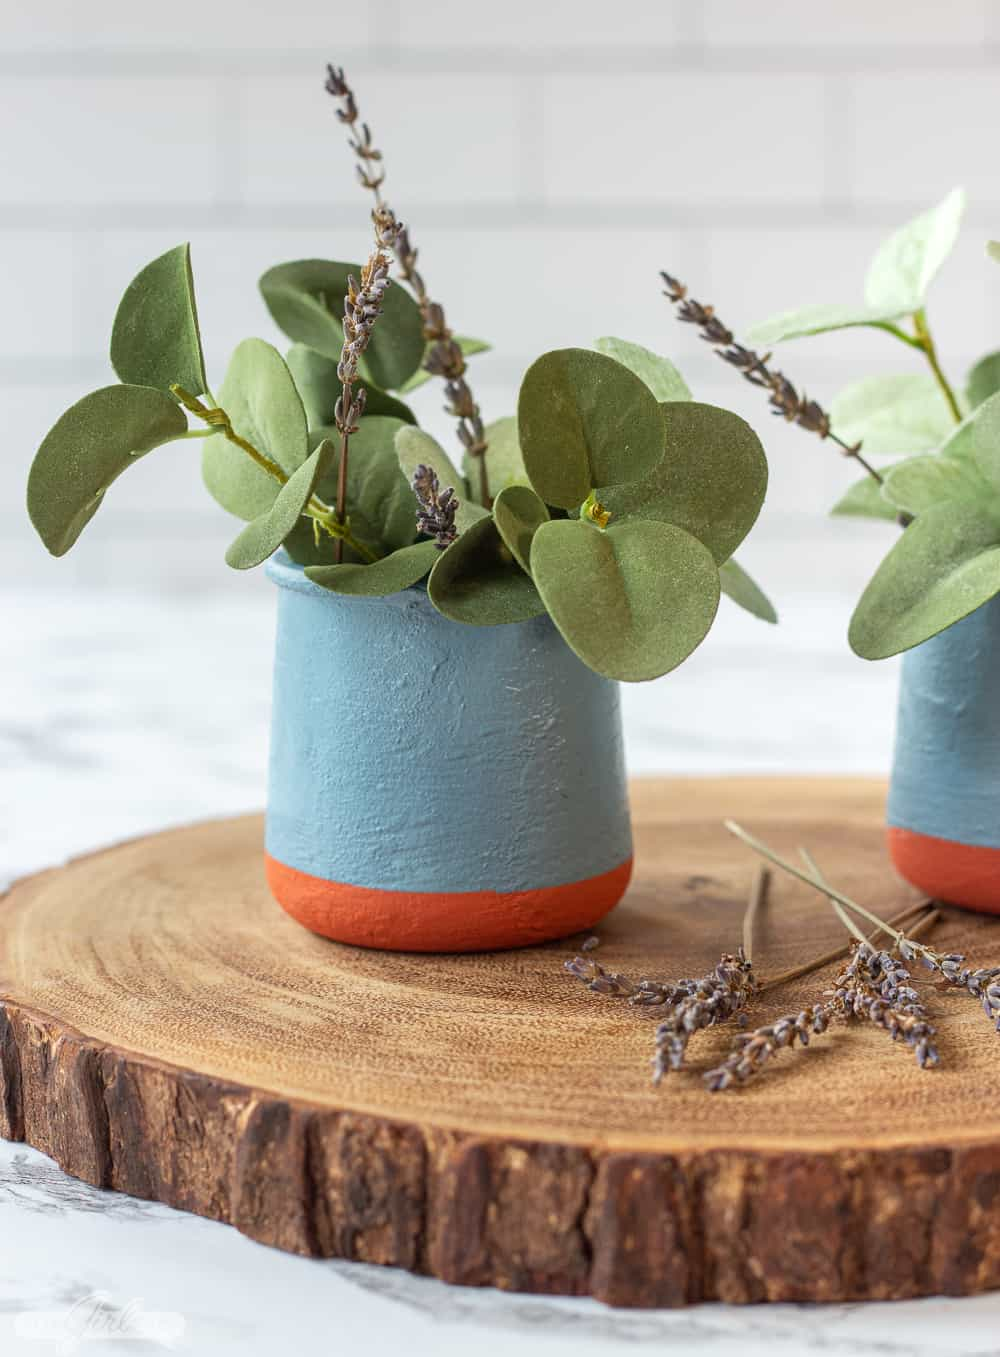 DIY painted replica La Fermiere yogurt pots with greenery on a wooden charger